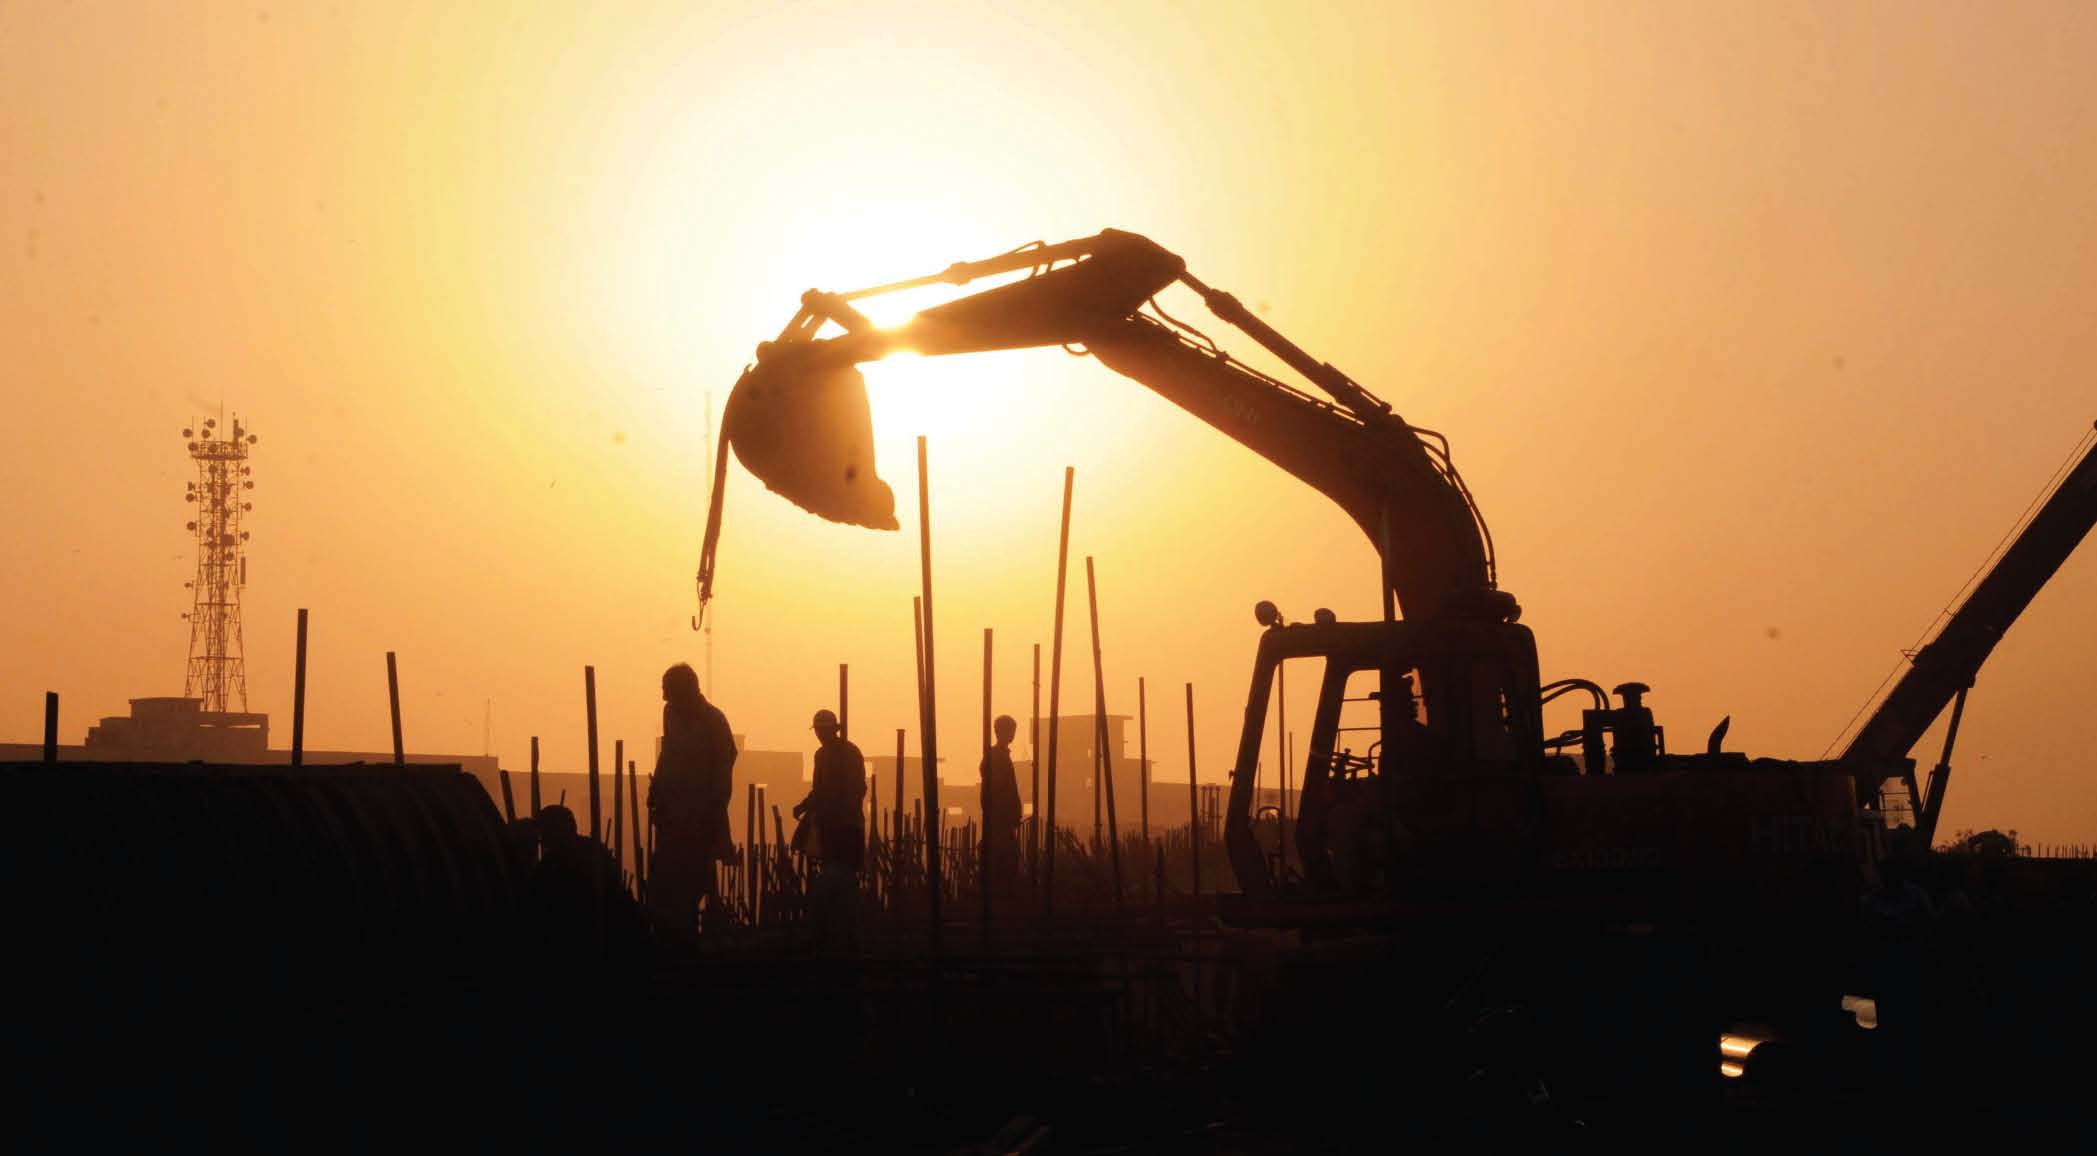 pti govt inks pact for building low cost houses